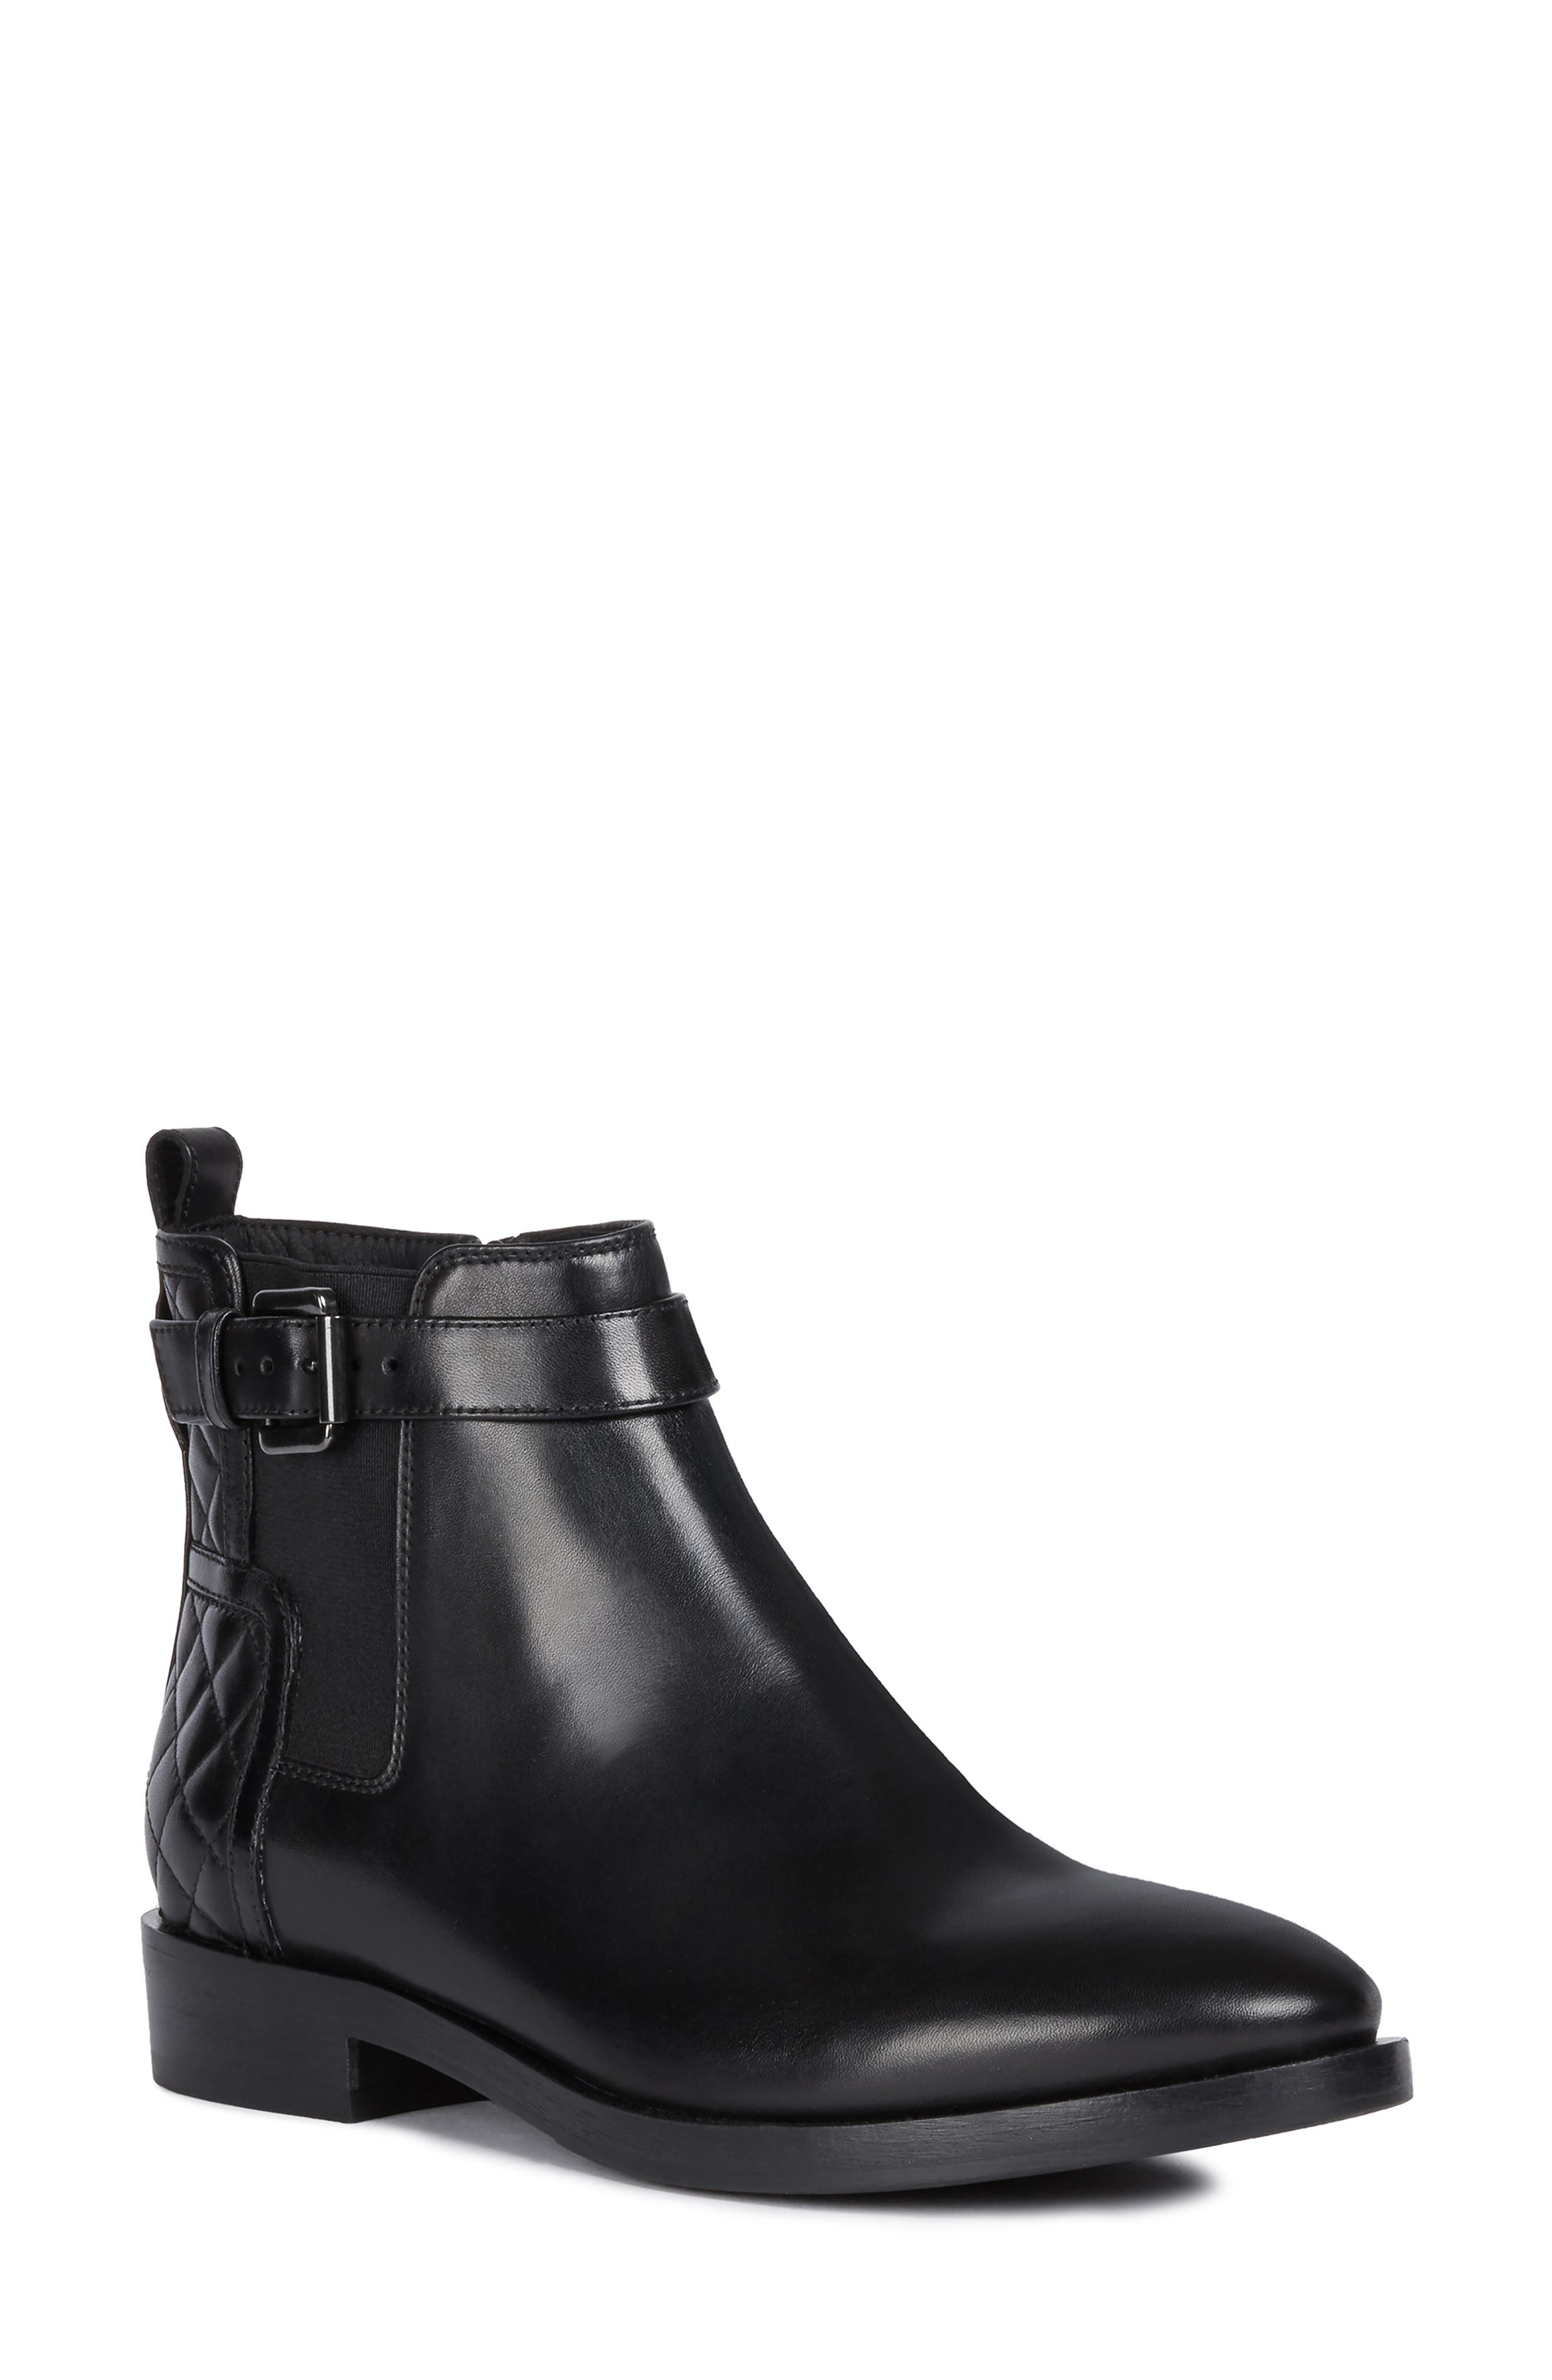 Zapatos Designer Shoes Ltd | Geox 'Glynna' Ankle Boot